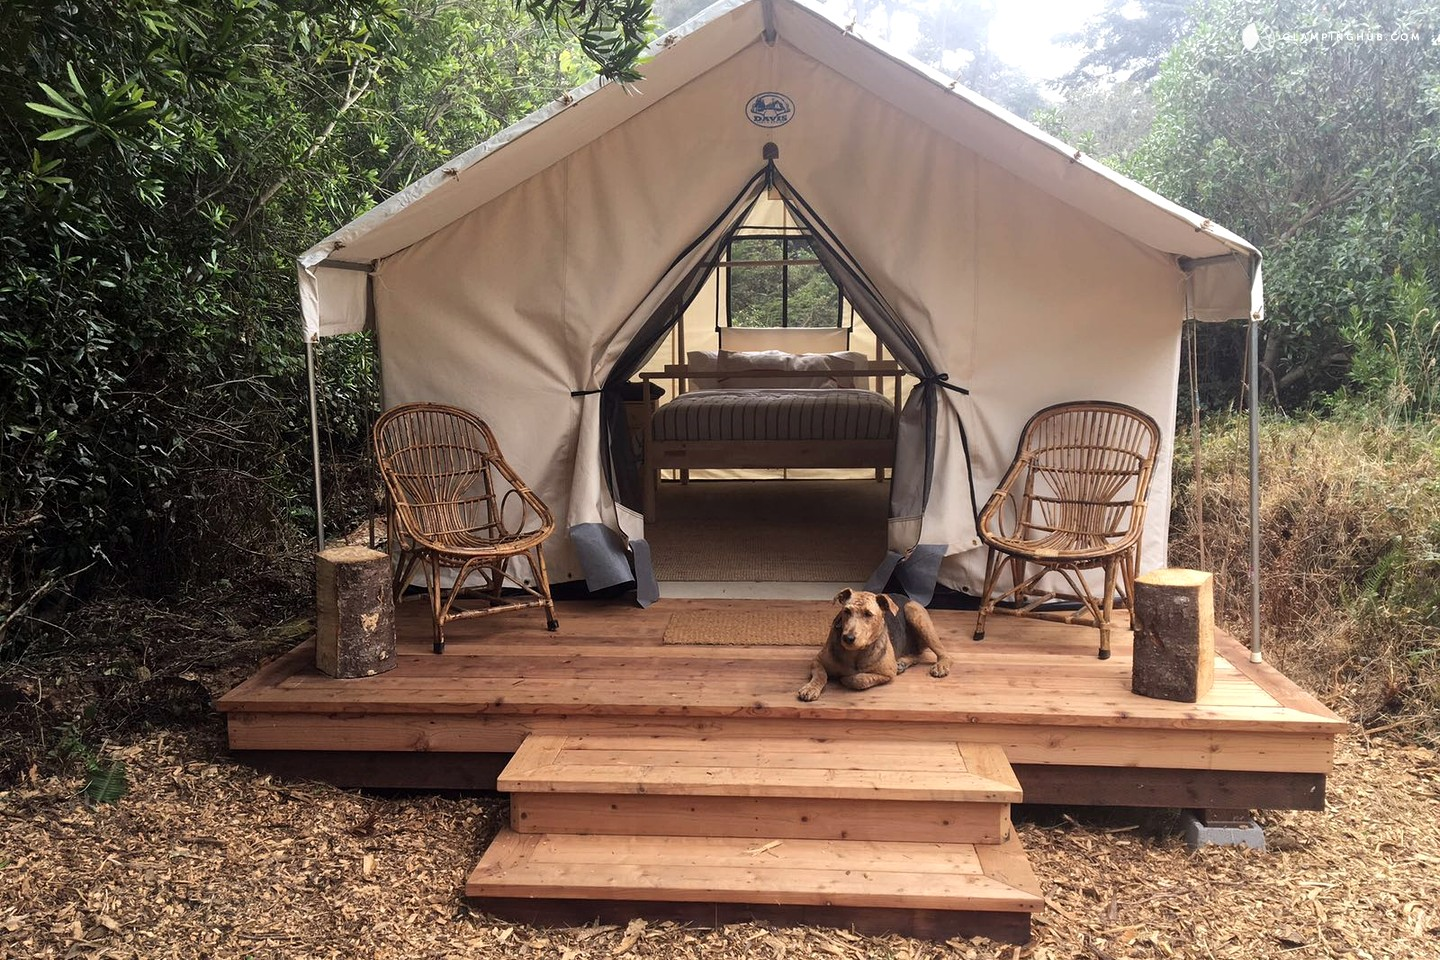 Peaceful Safari Tent C&ing in Coastal Woodlands  Hopaway Holiday - Vacation and Leisure Services & Peaceful Safari Tent Camping in Coastal Woodlands : Hopaway Holiday ...